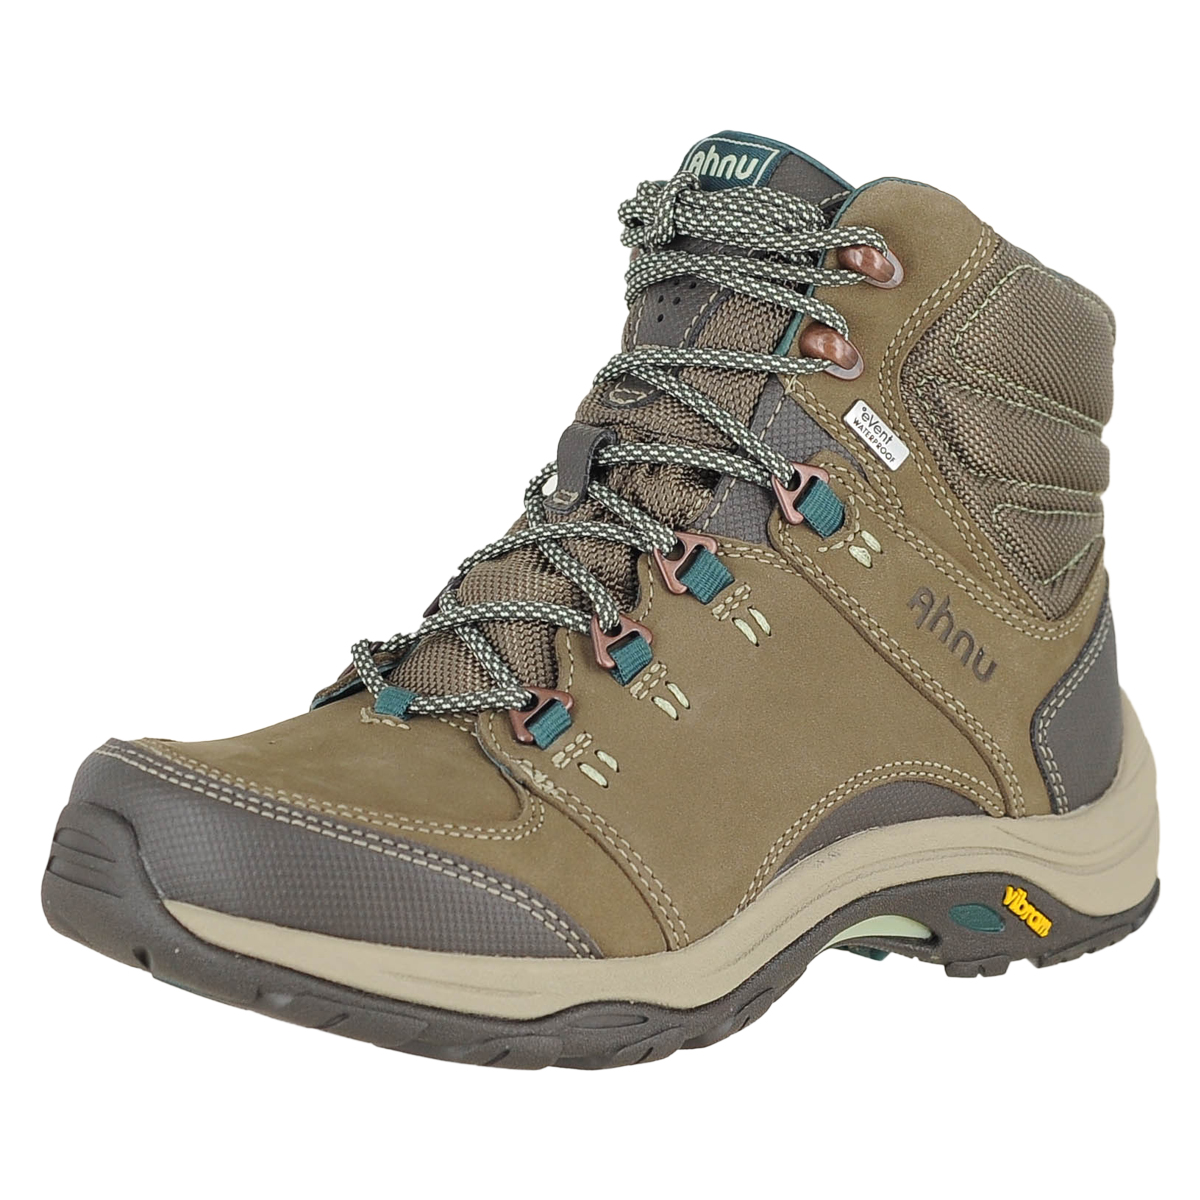 59537d34044 Details about Ahnu By Teva Montara Iii Boot Event Chocolate Chip Womens  Hiking Boots Size 11M